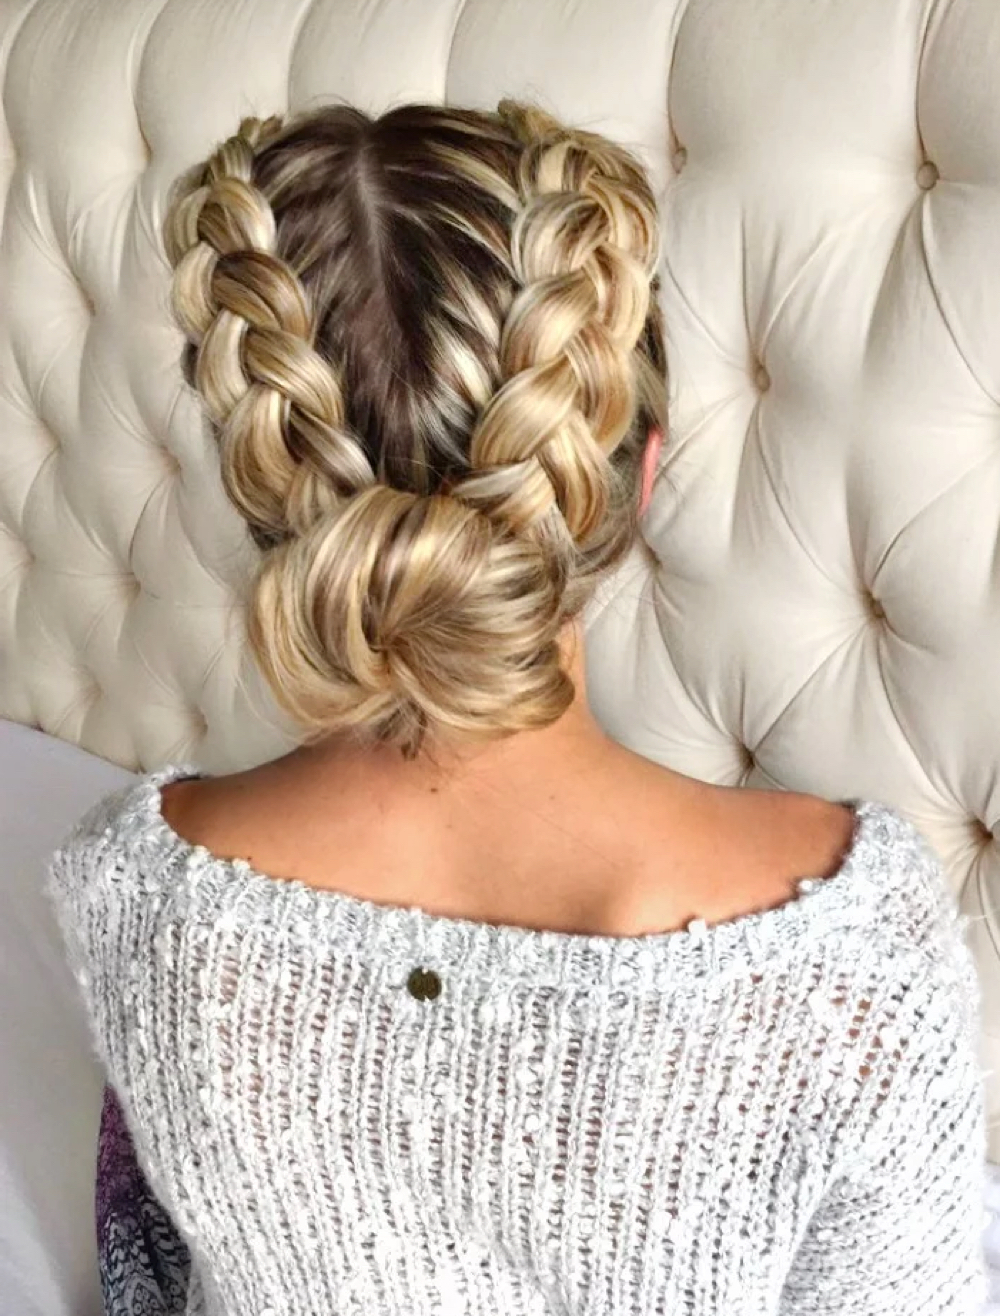 29 Gorgeous Braided Updo Ideas For 2019 With Regard To Newest Braided Chignon Bun Hairstyles (View 6 of 20)